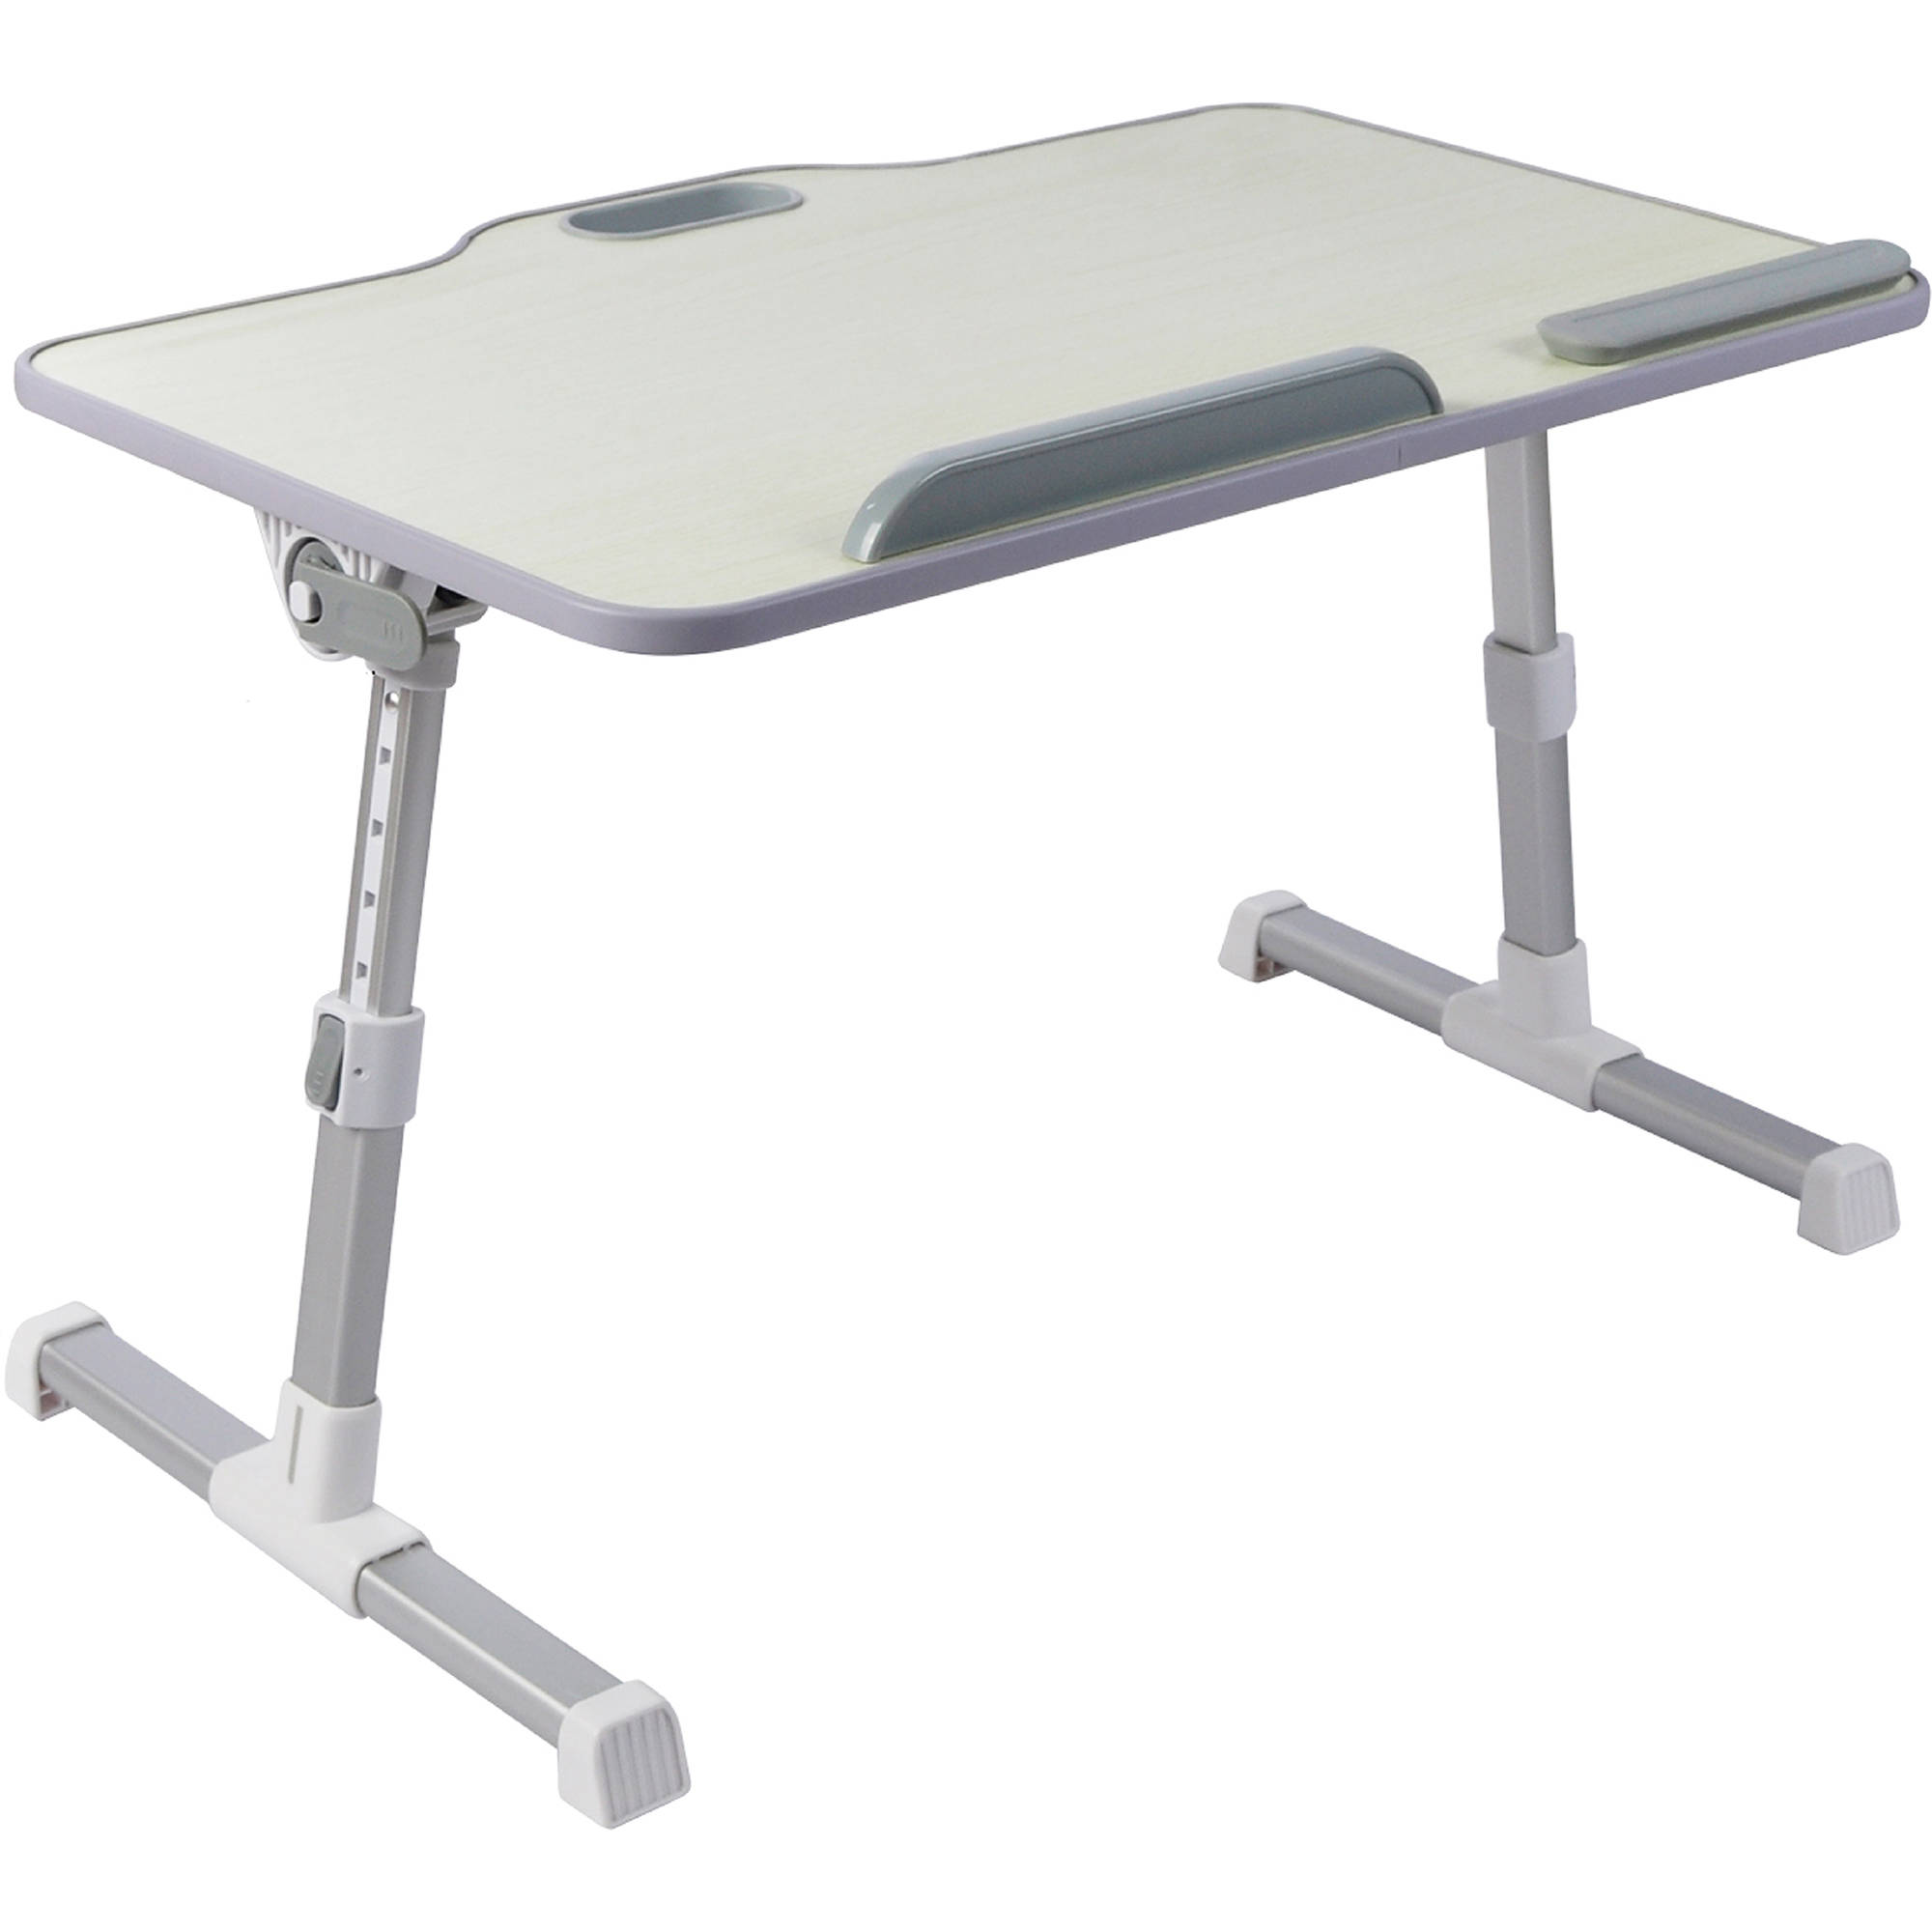 Portable Laptop table Stand Height /& Angle Adjustable Standing Desk Beige color